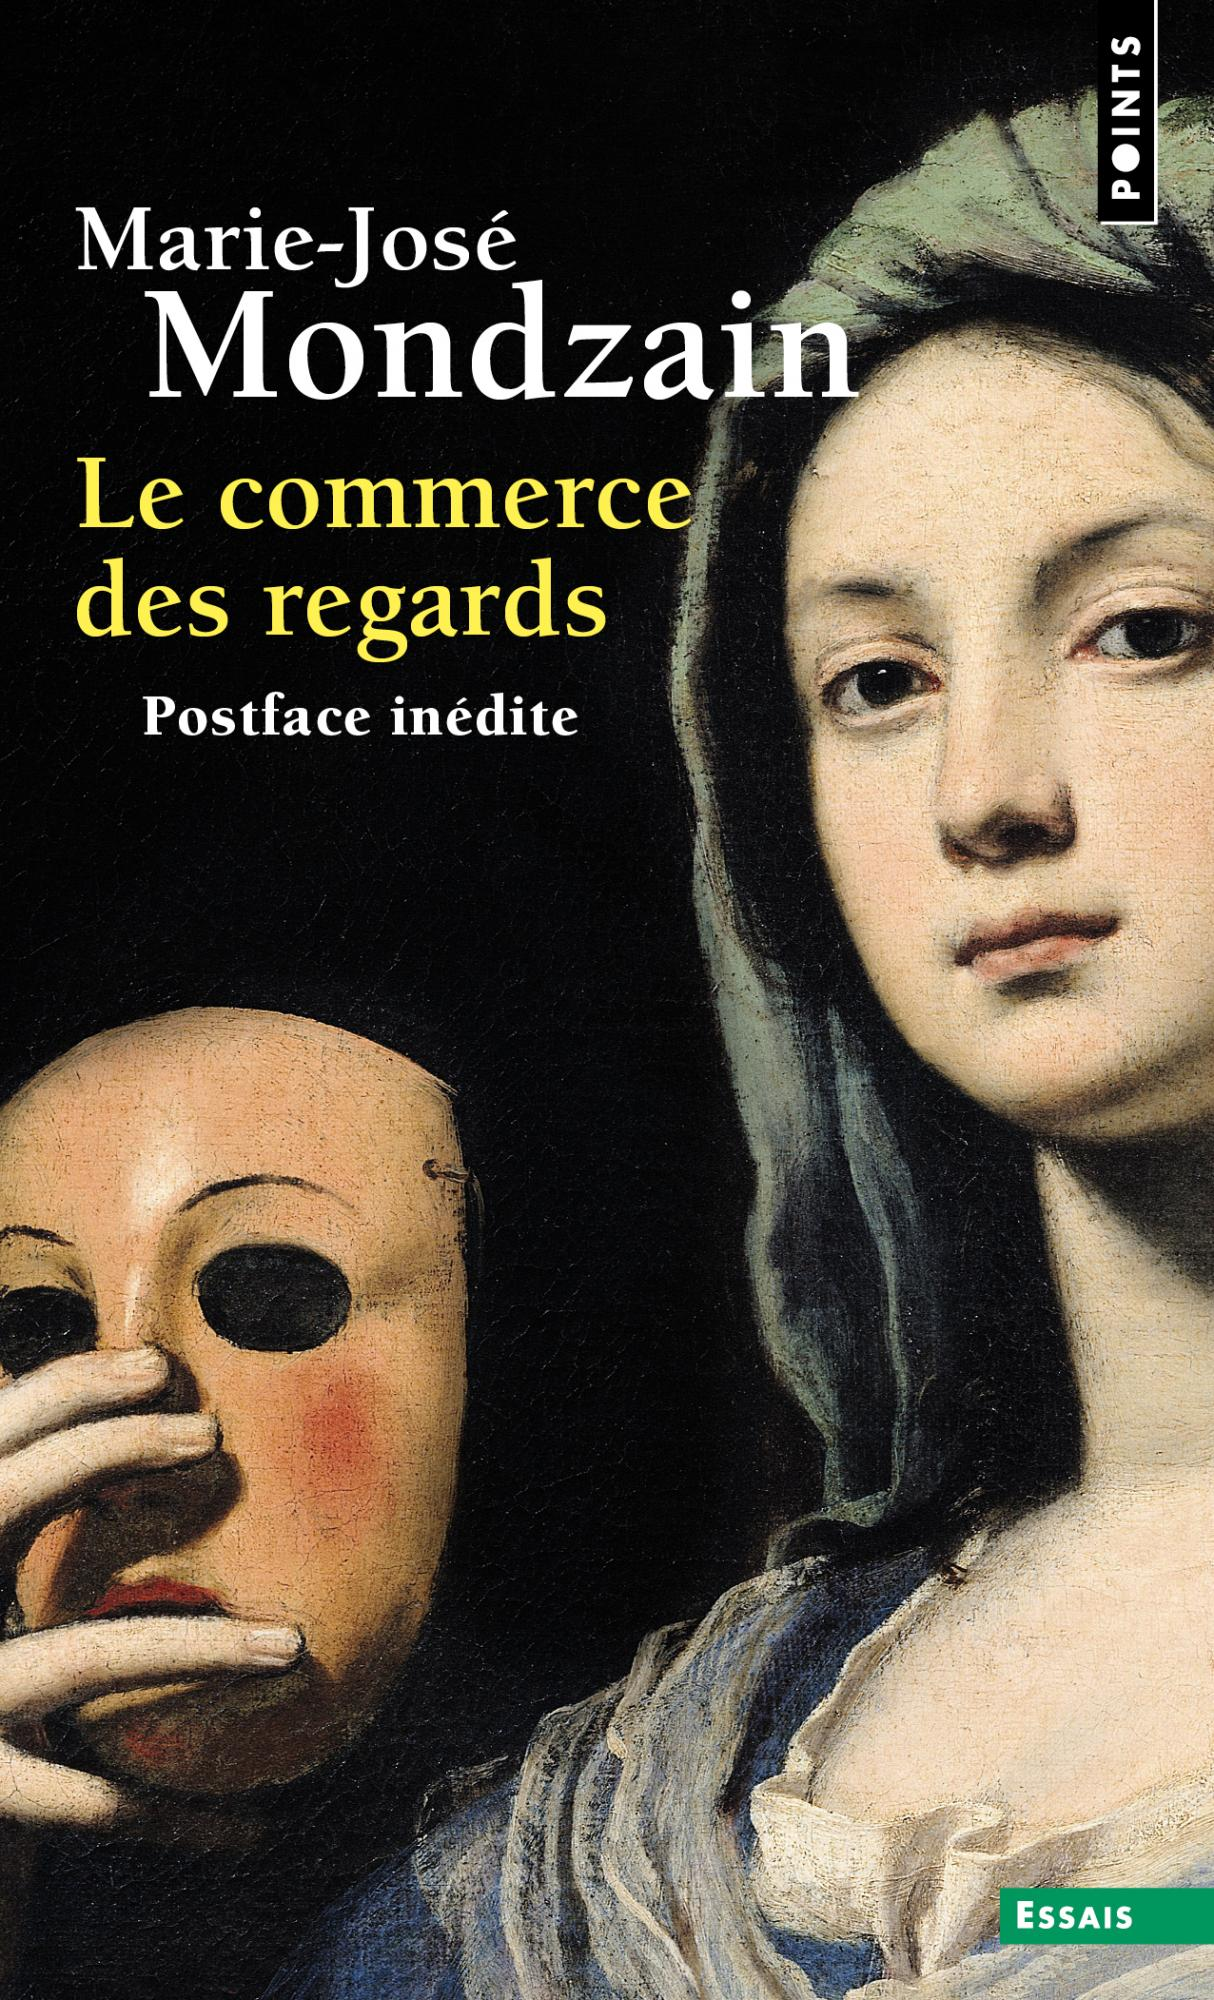 M.-J. Mondzain, Le commerce des regards